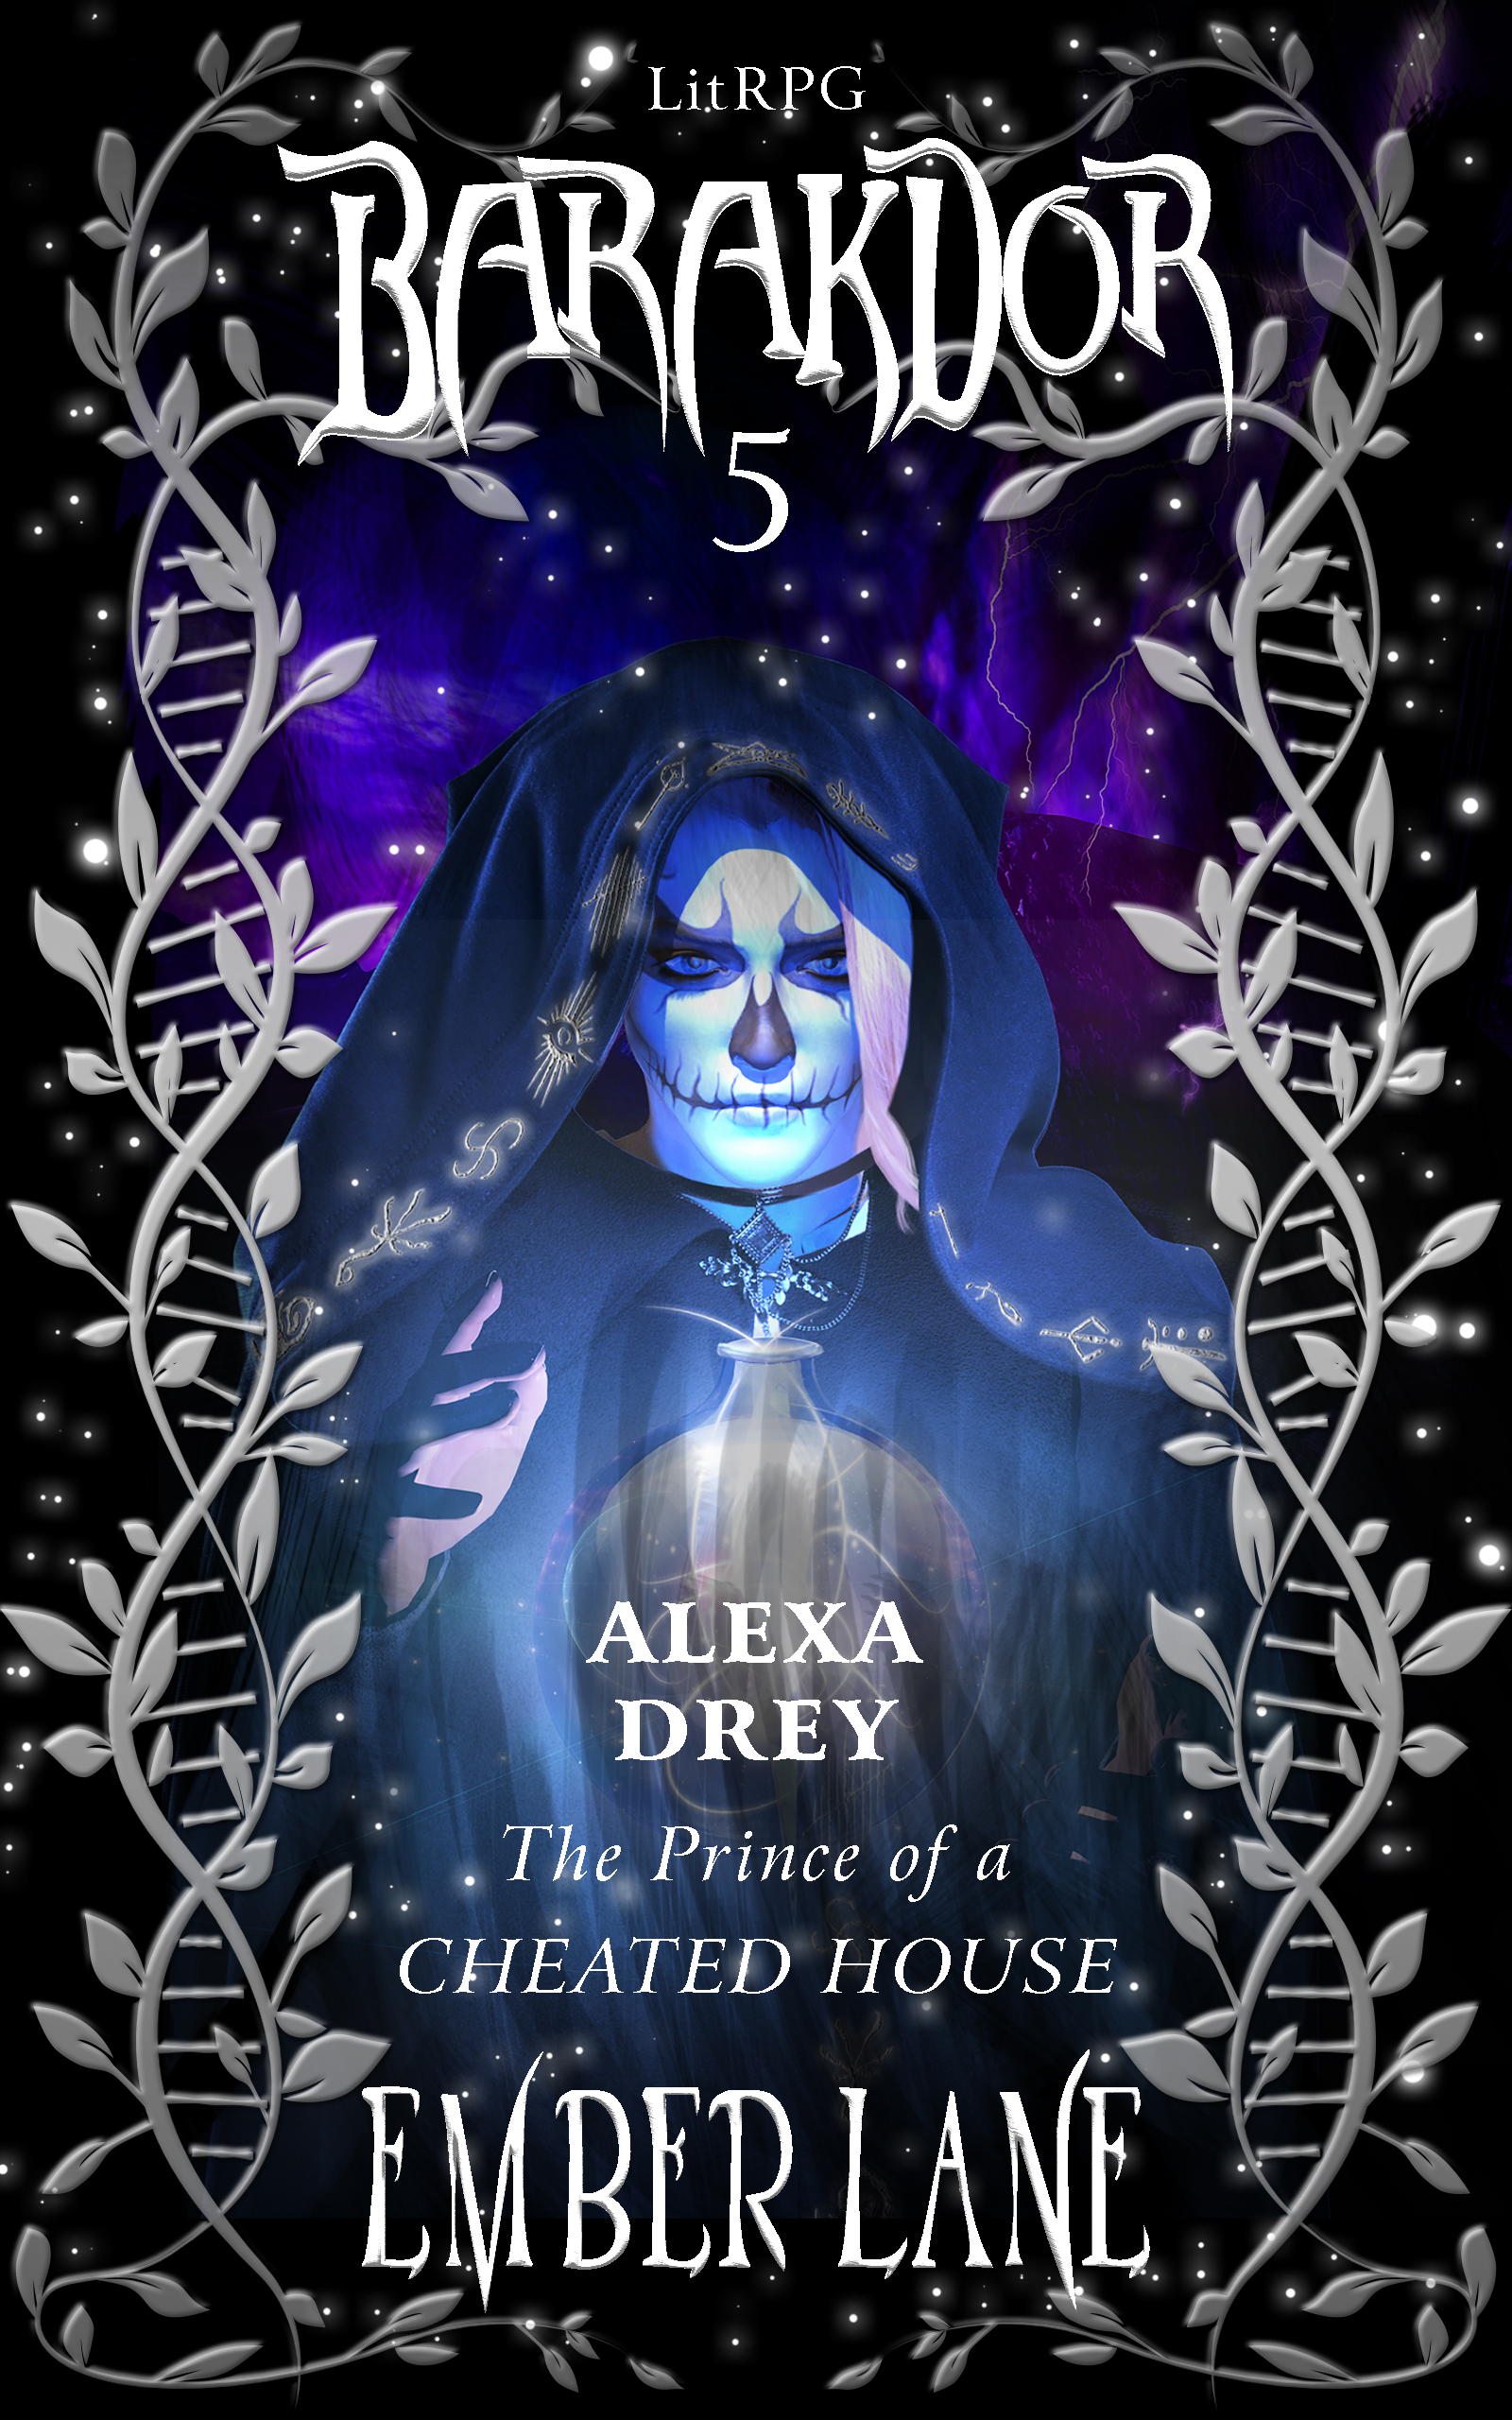 ALEXA DREY – The Prince of A Cheated House (Barakdor book 5)